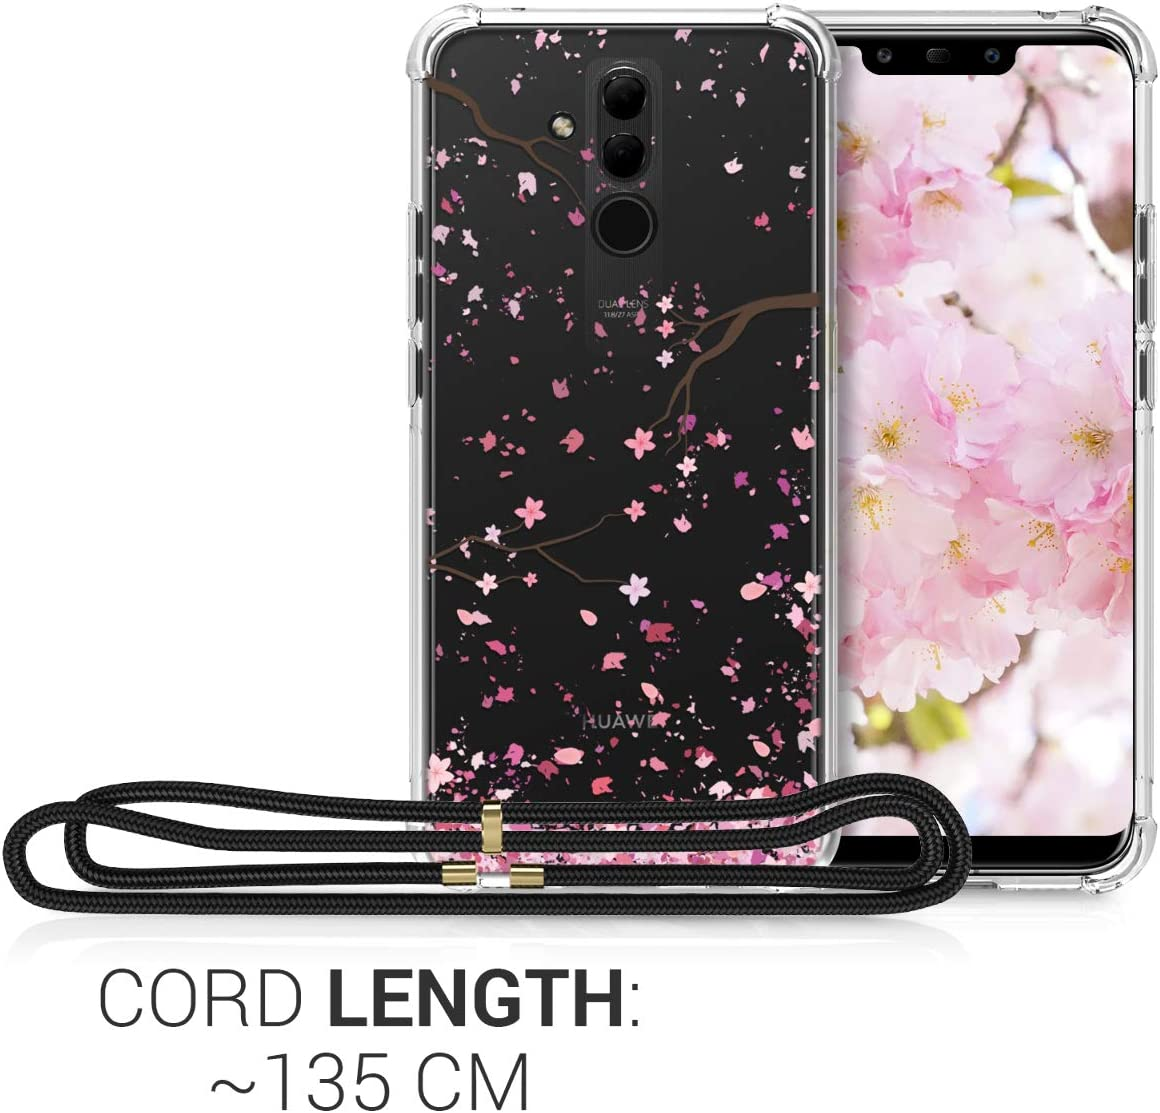 Brushed Heart White//Transparent kwmobile Crossbody Case Compatible with Huawei Mate 20 Lite Clear TPU Cell Phone Mobile Cover Holder with Neck Cord Lanyard Strap